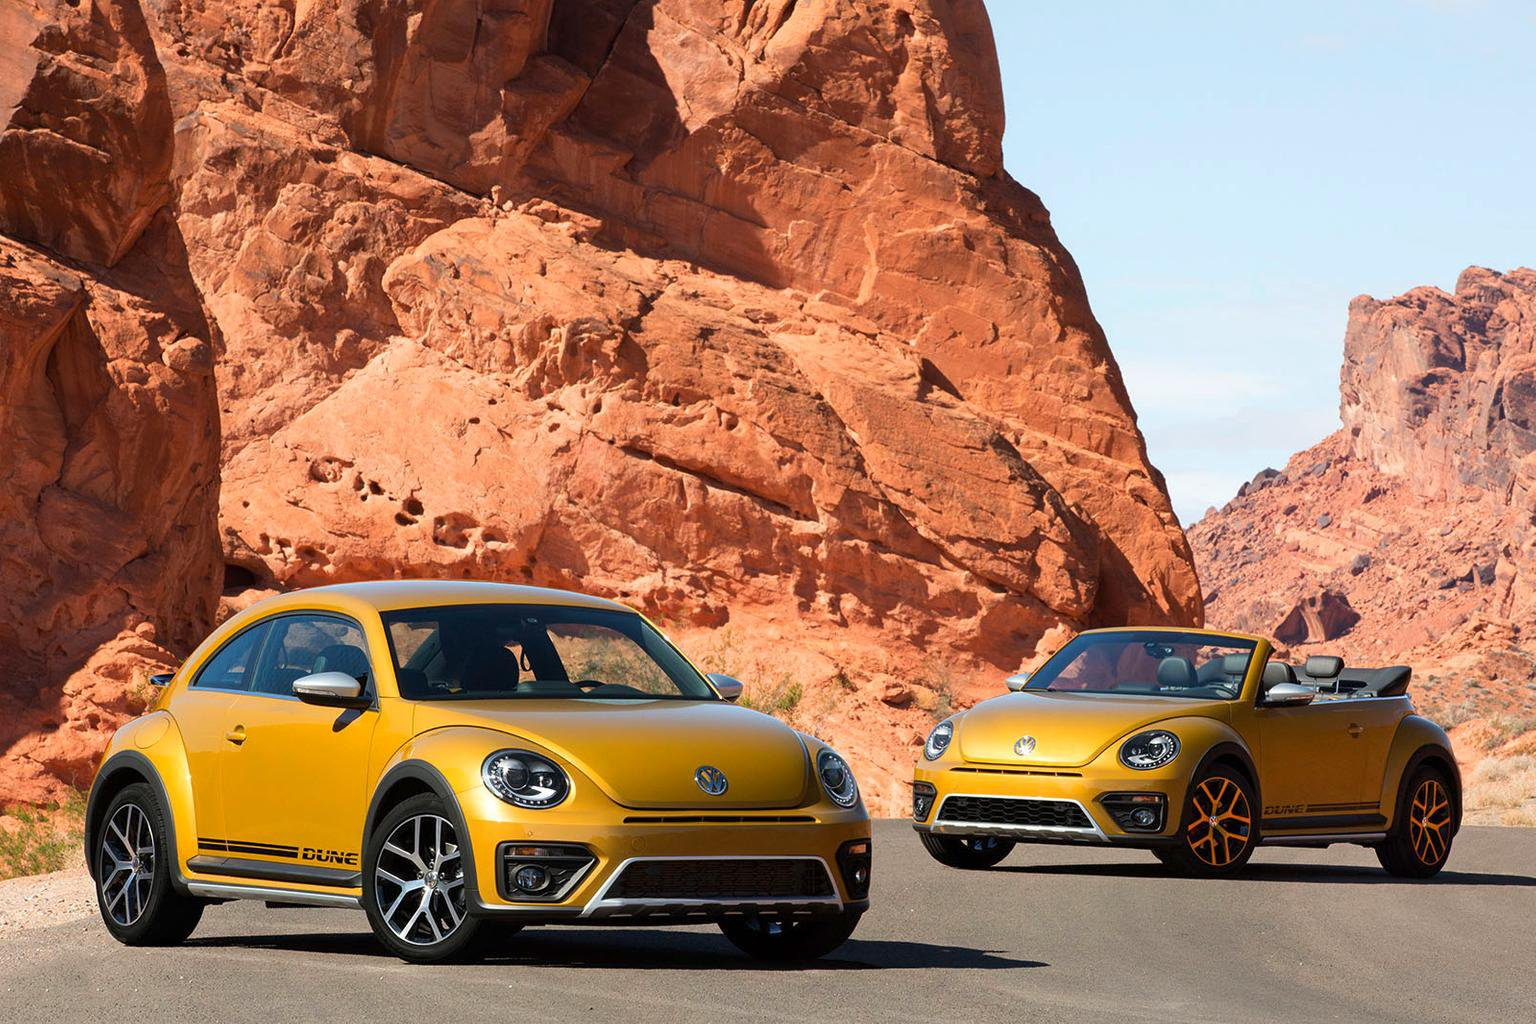 2016 Volkswagen Beetle Dune revealed